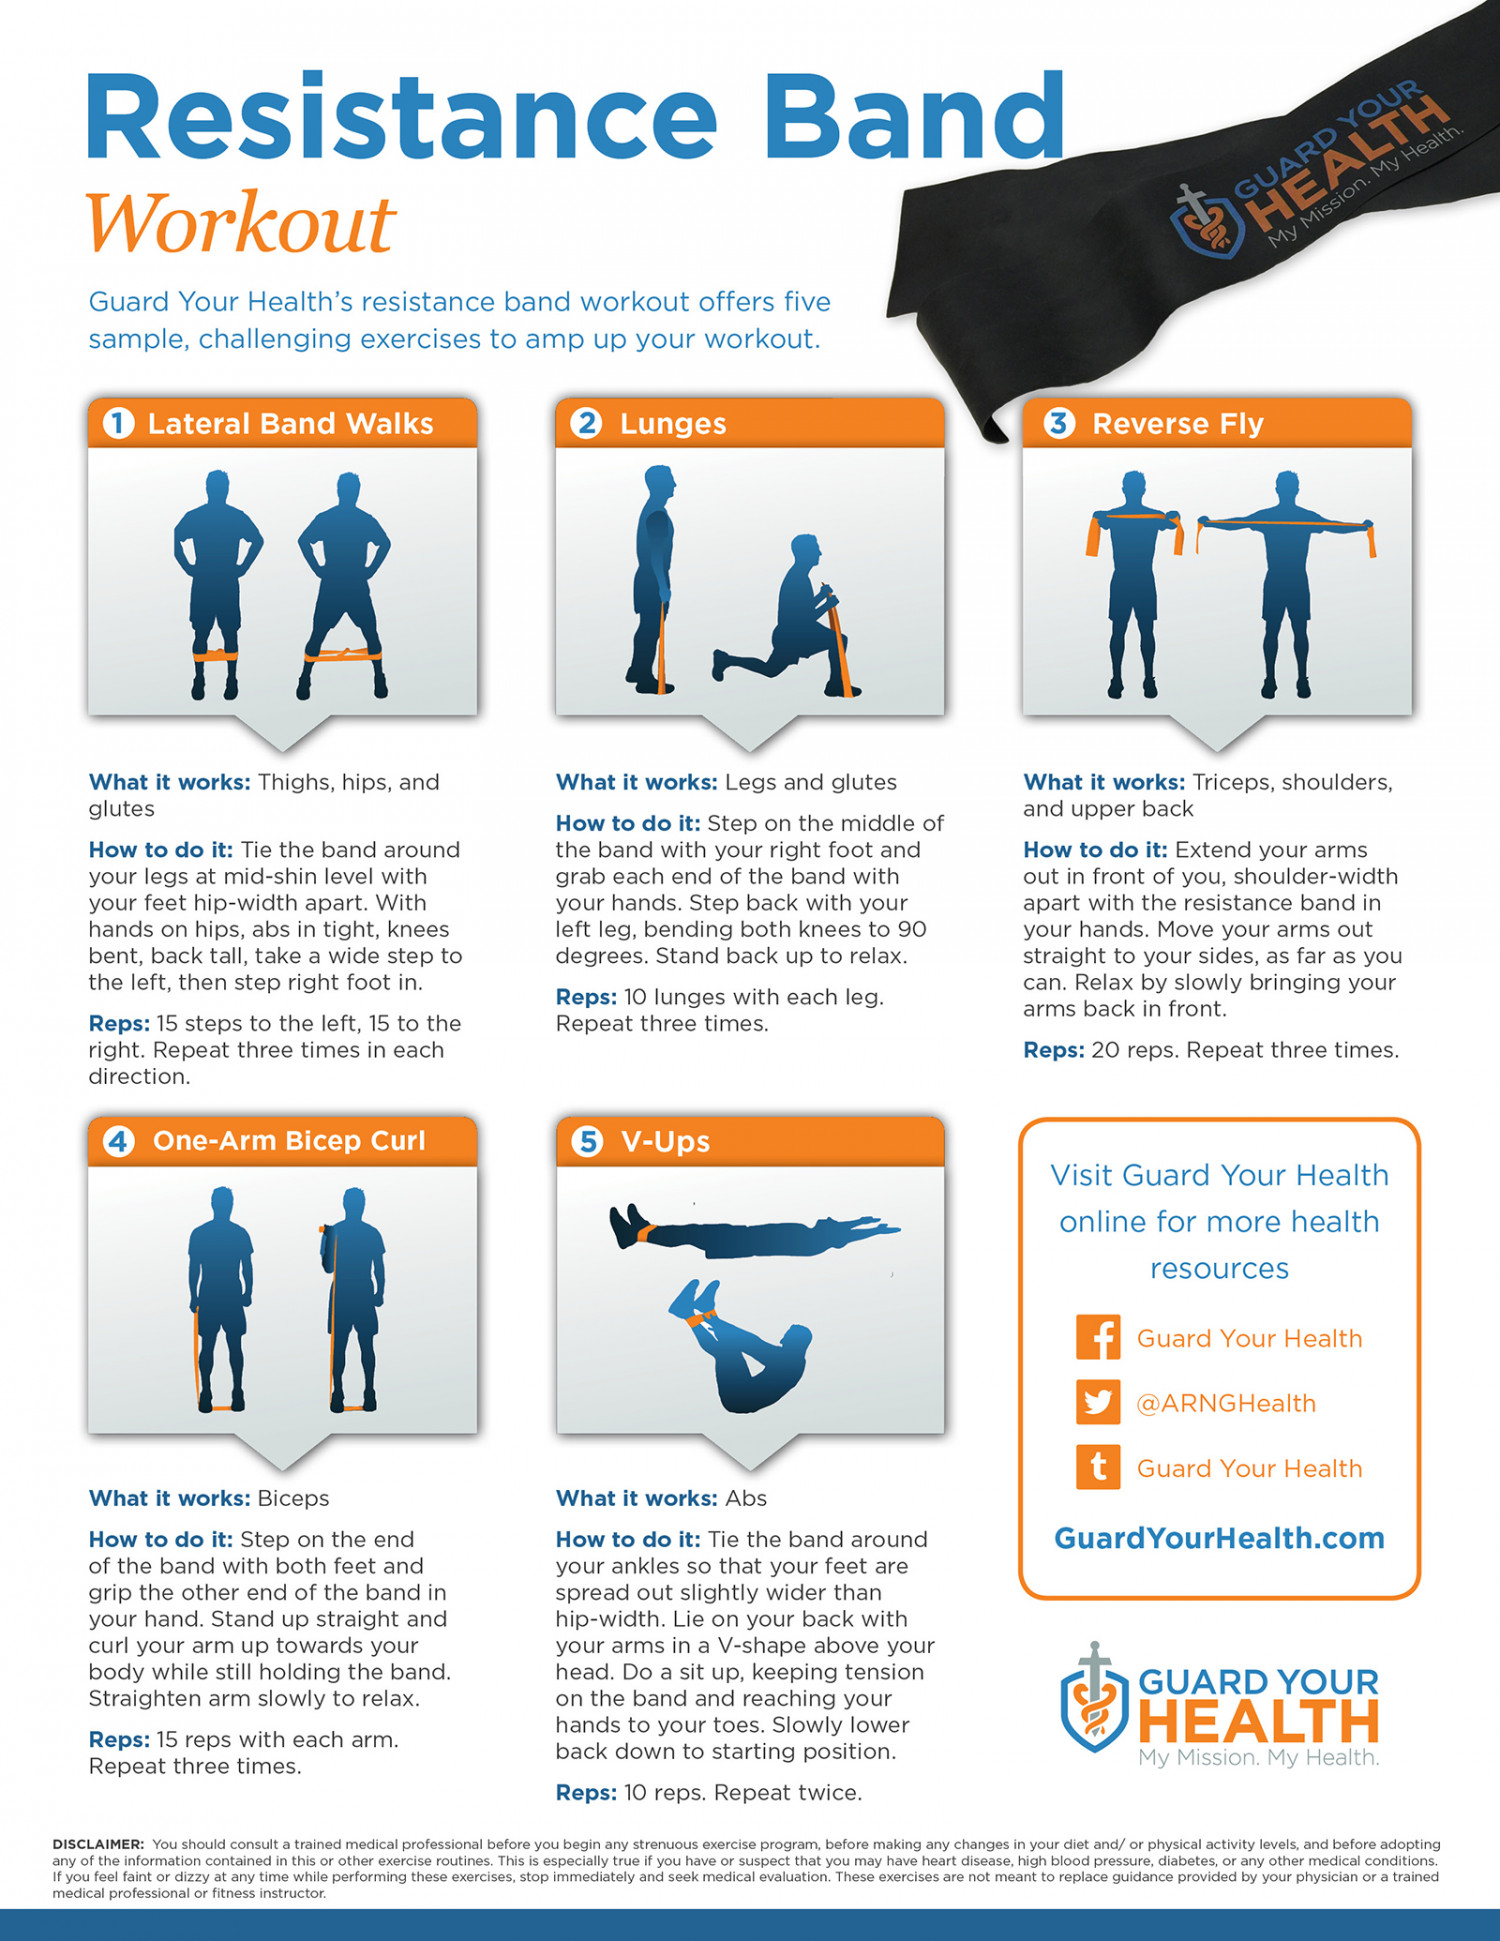 Resistance Band Workout Infographic